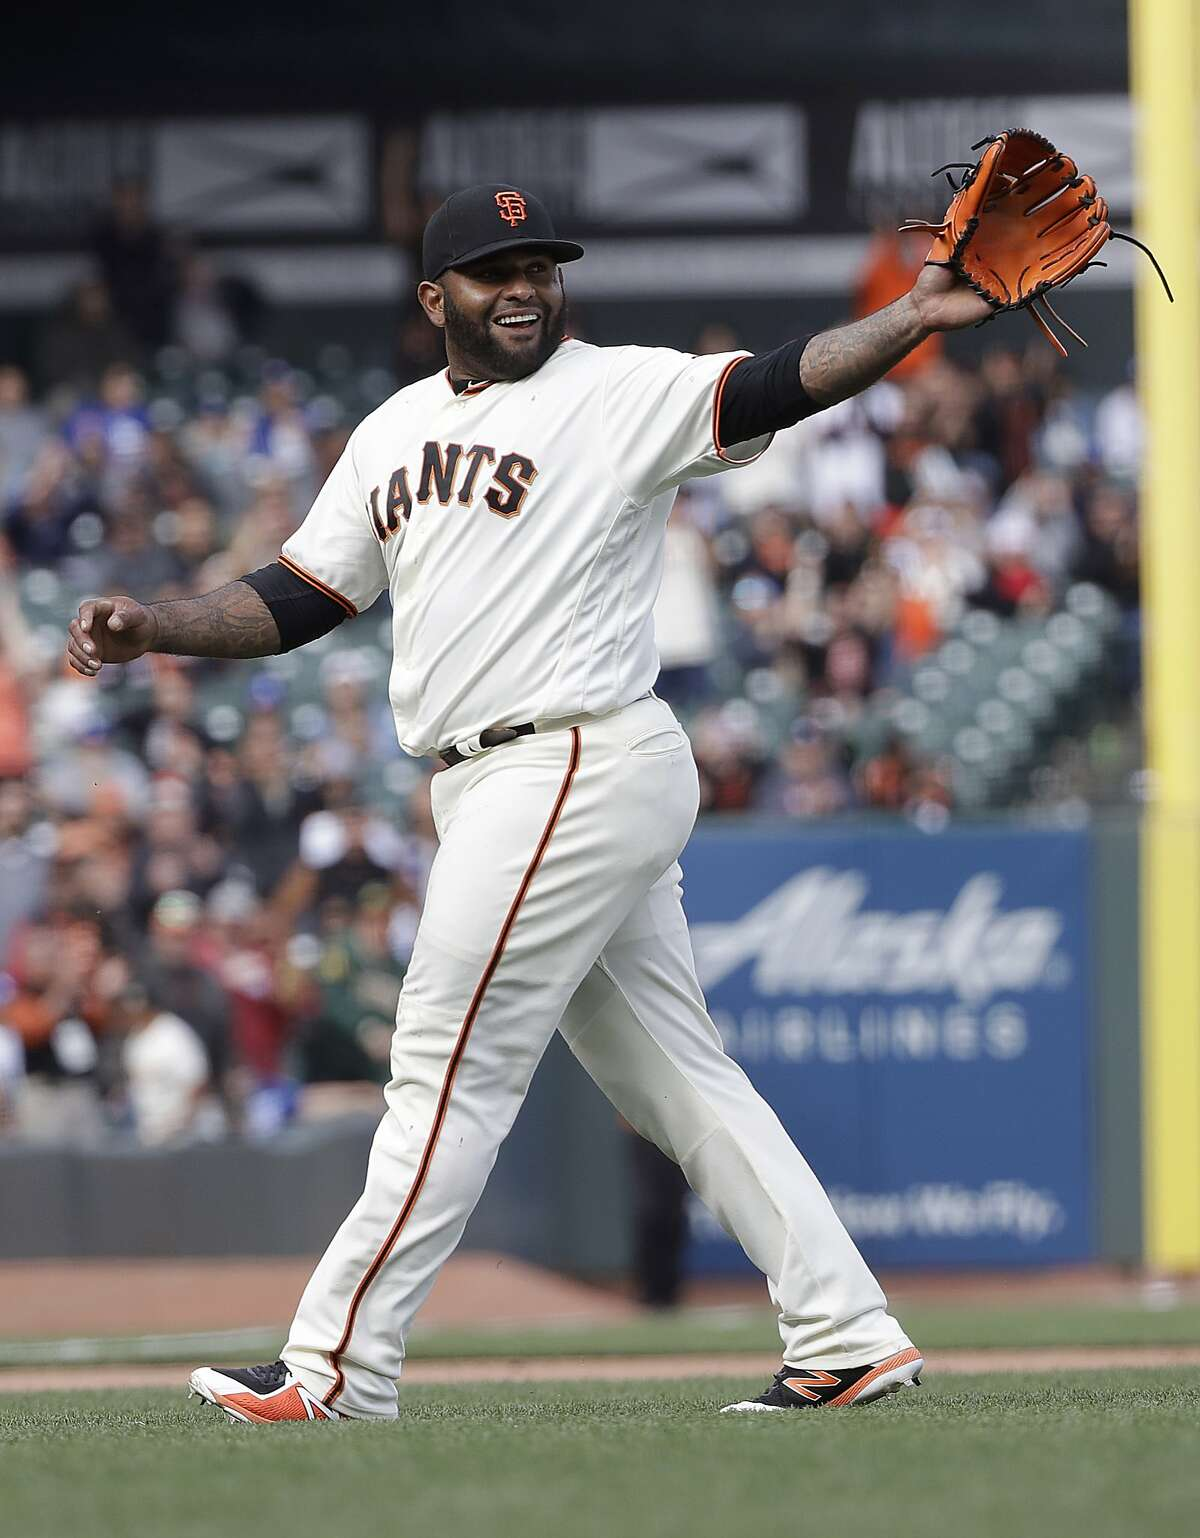 San Francisco Giants' Pablo Sandoval smiles after pitching against the Los Angeles Dodgers during the ninth inning of a baseball game in San Francisco, Saturday, April 28, 2018.